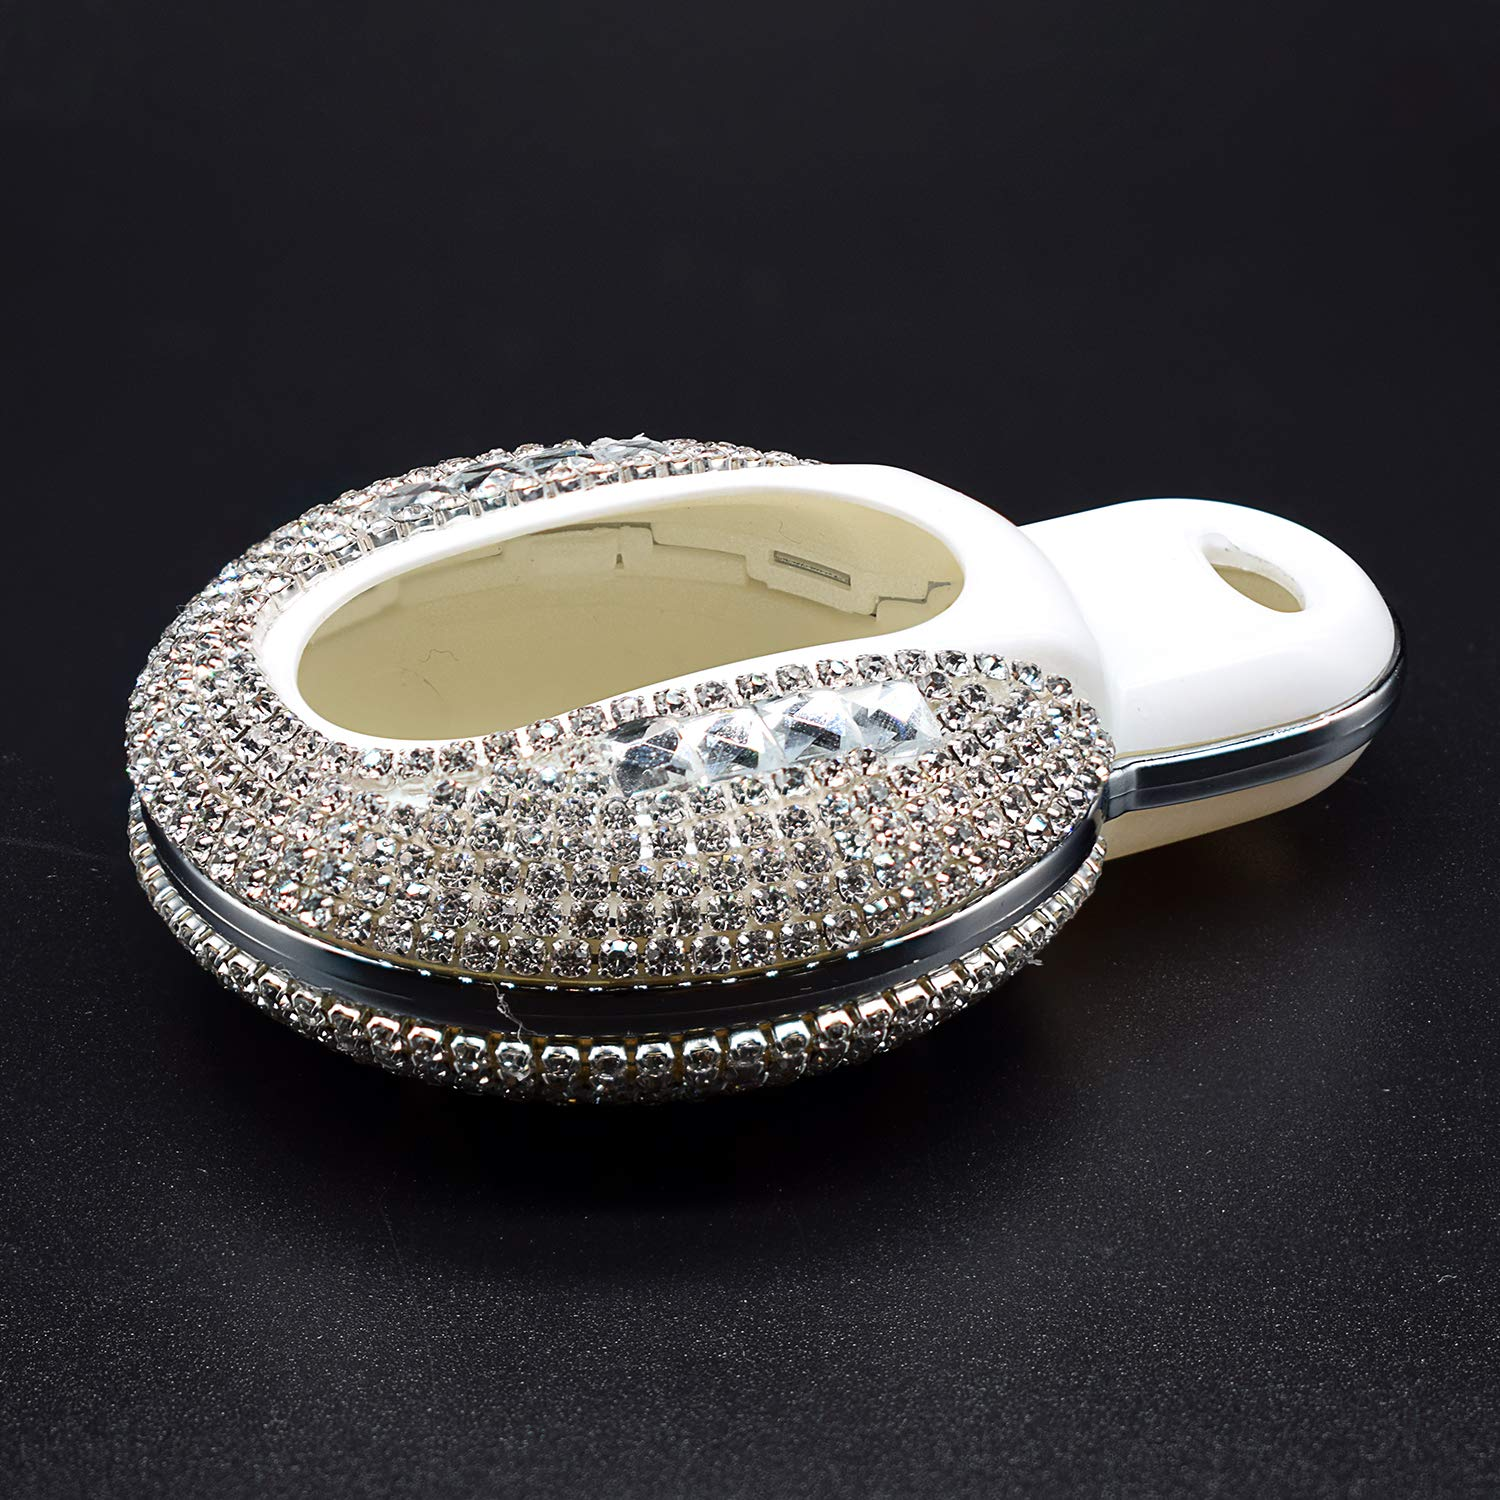 Red PGONE Luxury Bling Crystal Diamond Lady Key Fob Case Cover Keychain for Mini Cooper 3//4 Buttons Keyless Entry Remote Control Smart Key Protective Shell Bag F54 F55 F56 F57 F60 F Series